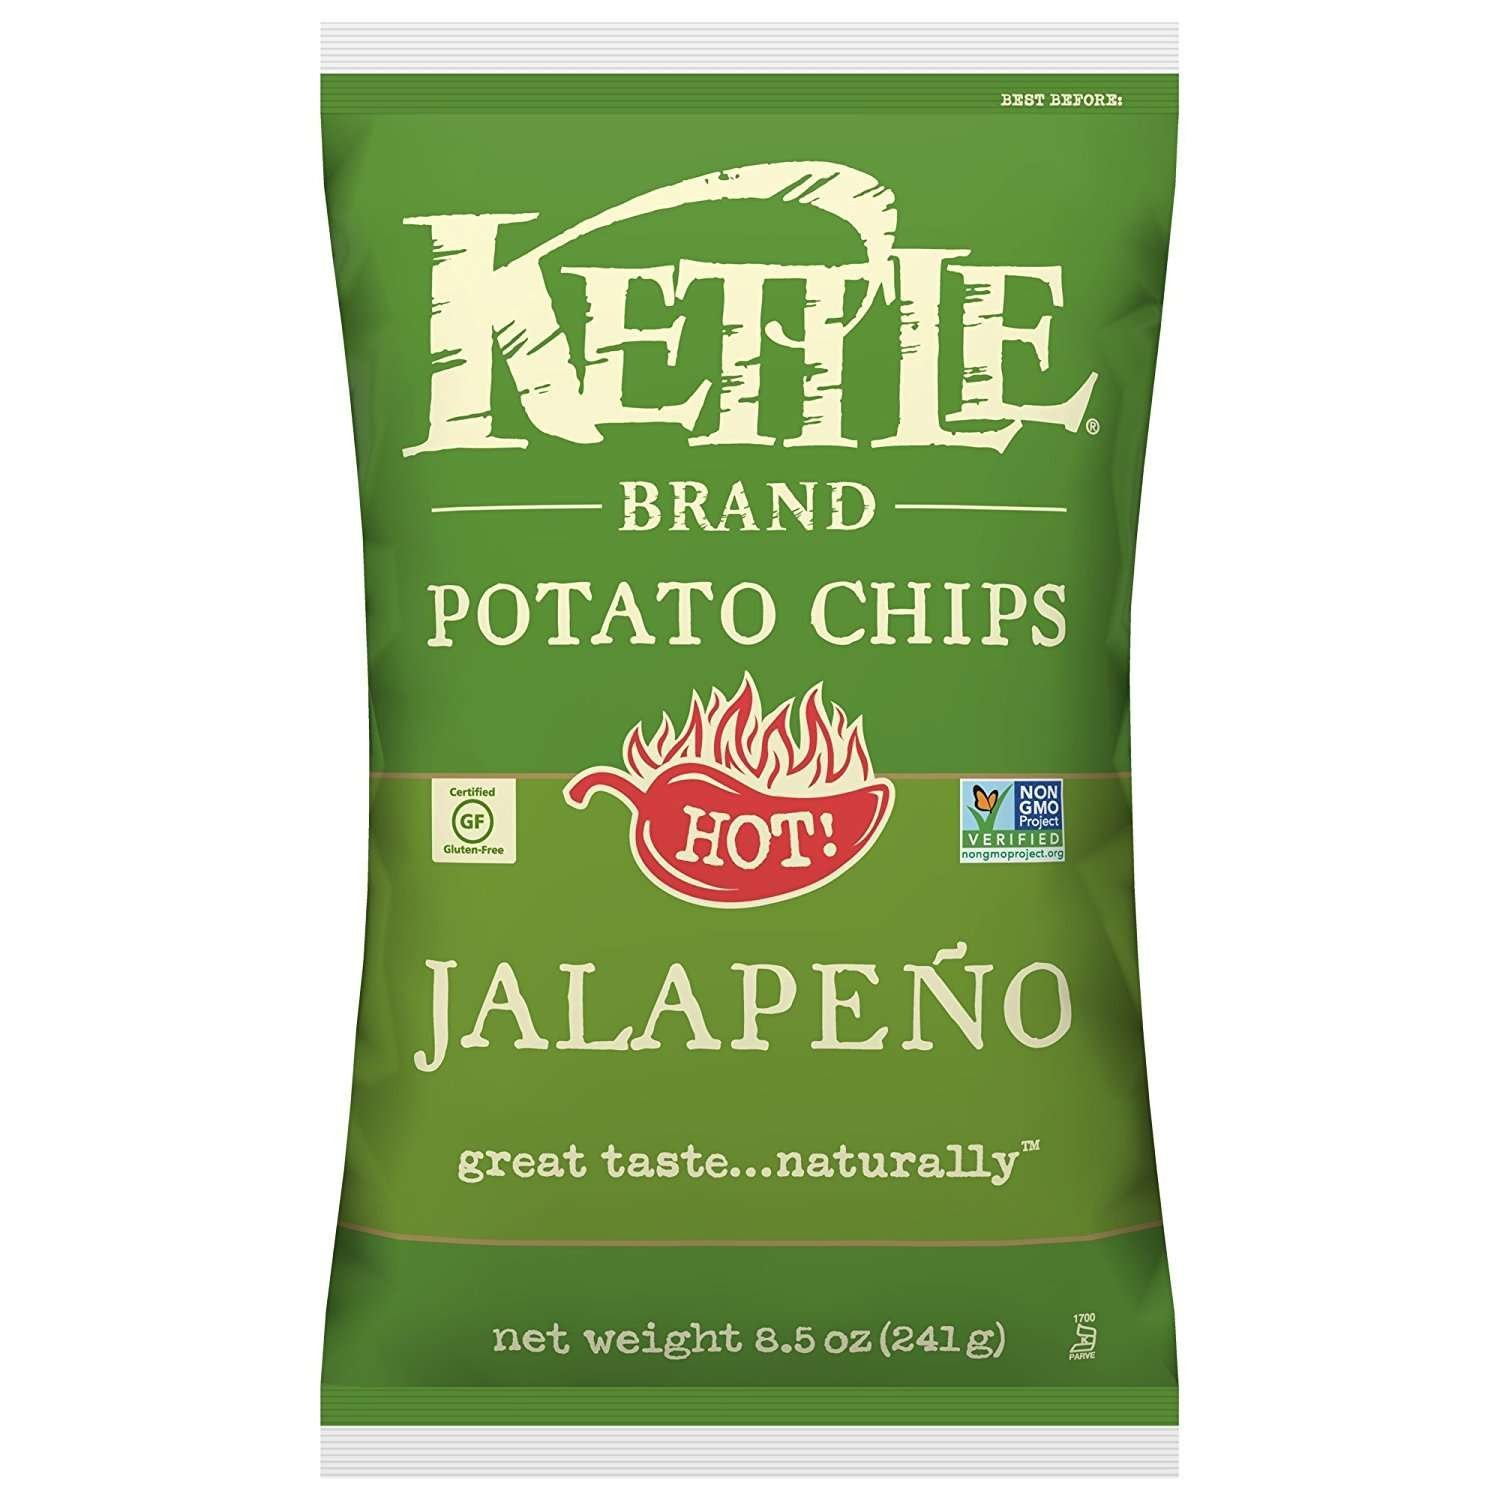 Kettle Brand Potato Chips, Jalapeno, 8.5 Oz